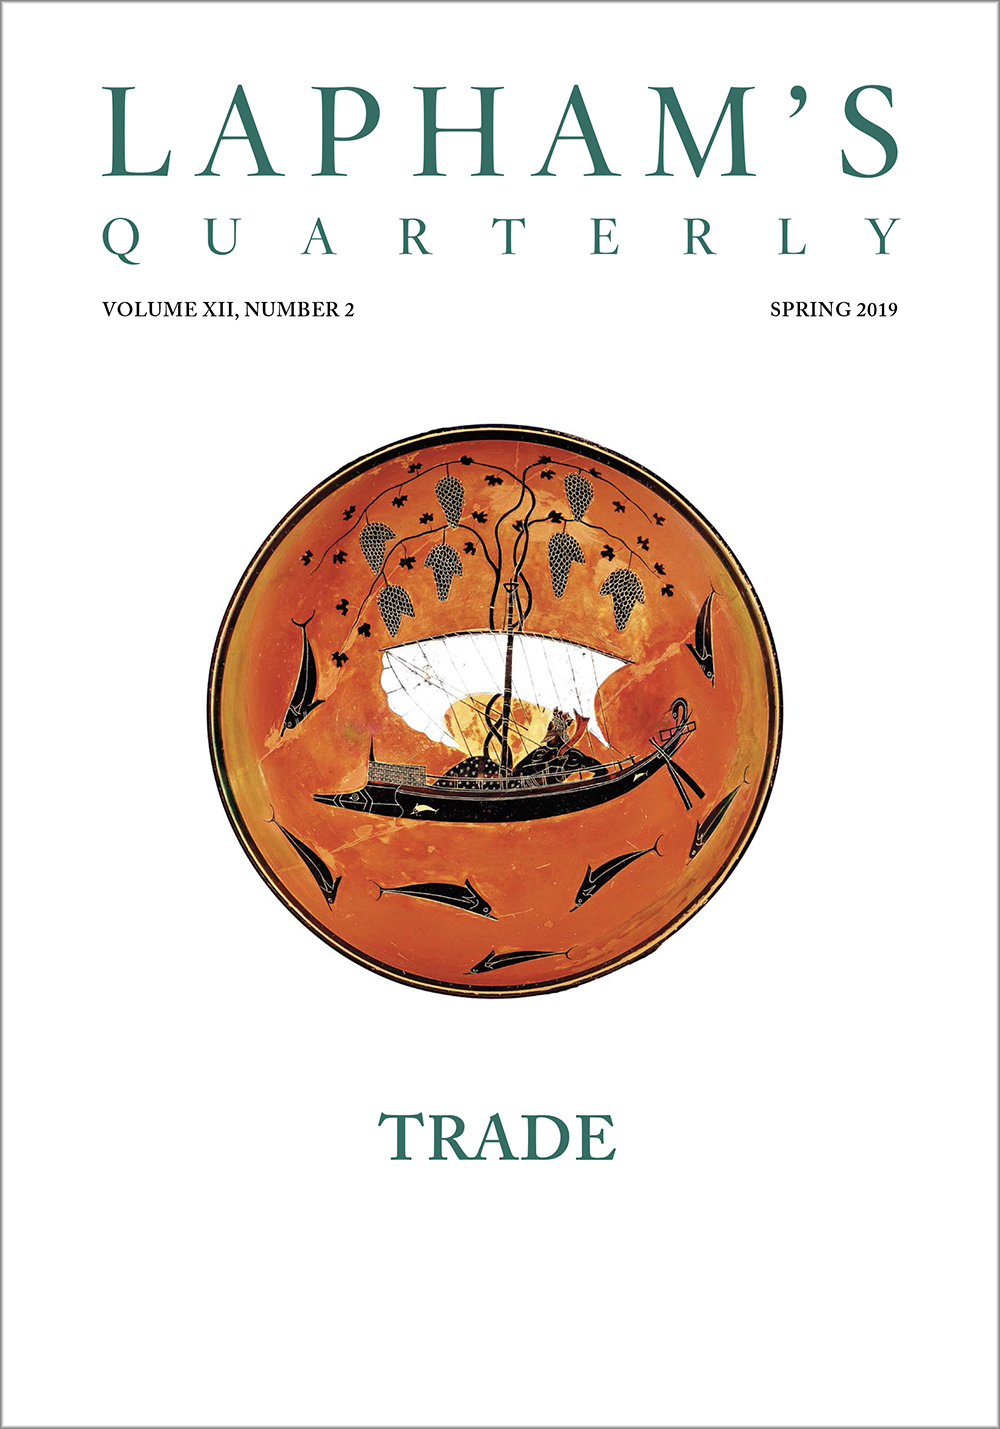 Trade, the Spring 2019 issue of Lapham's Quarterly.